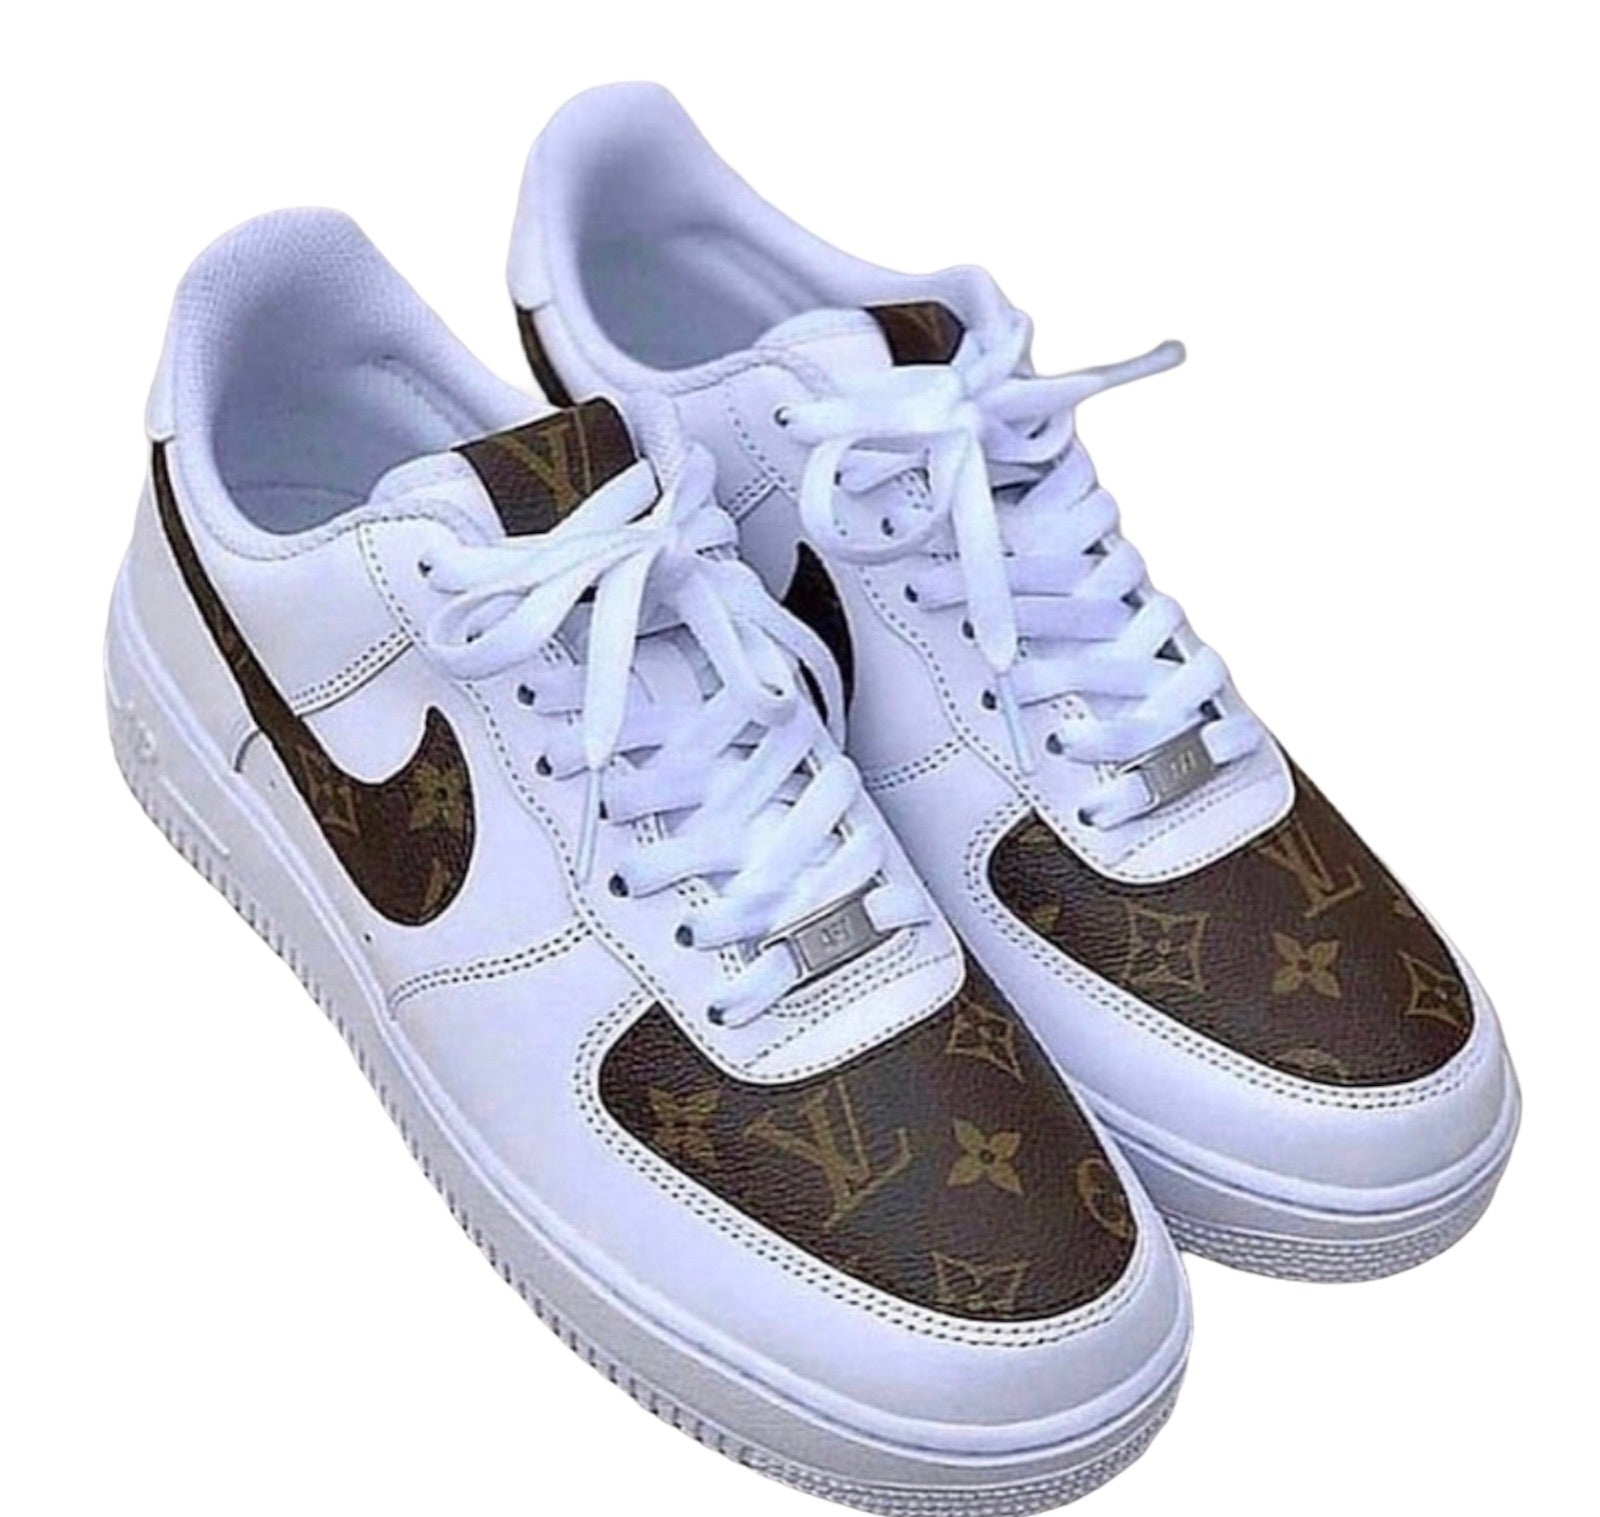 Custom Nike Airforce 1 x LV Leather